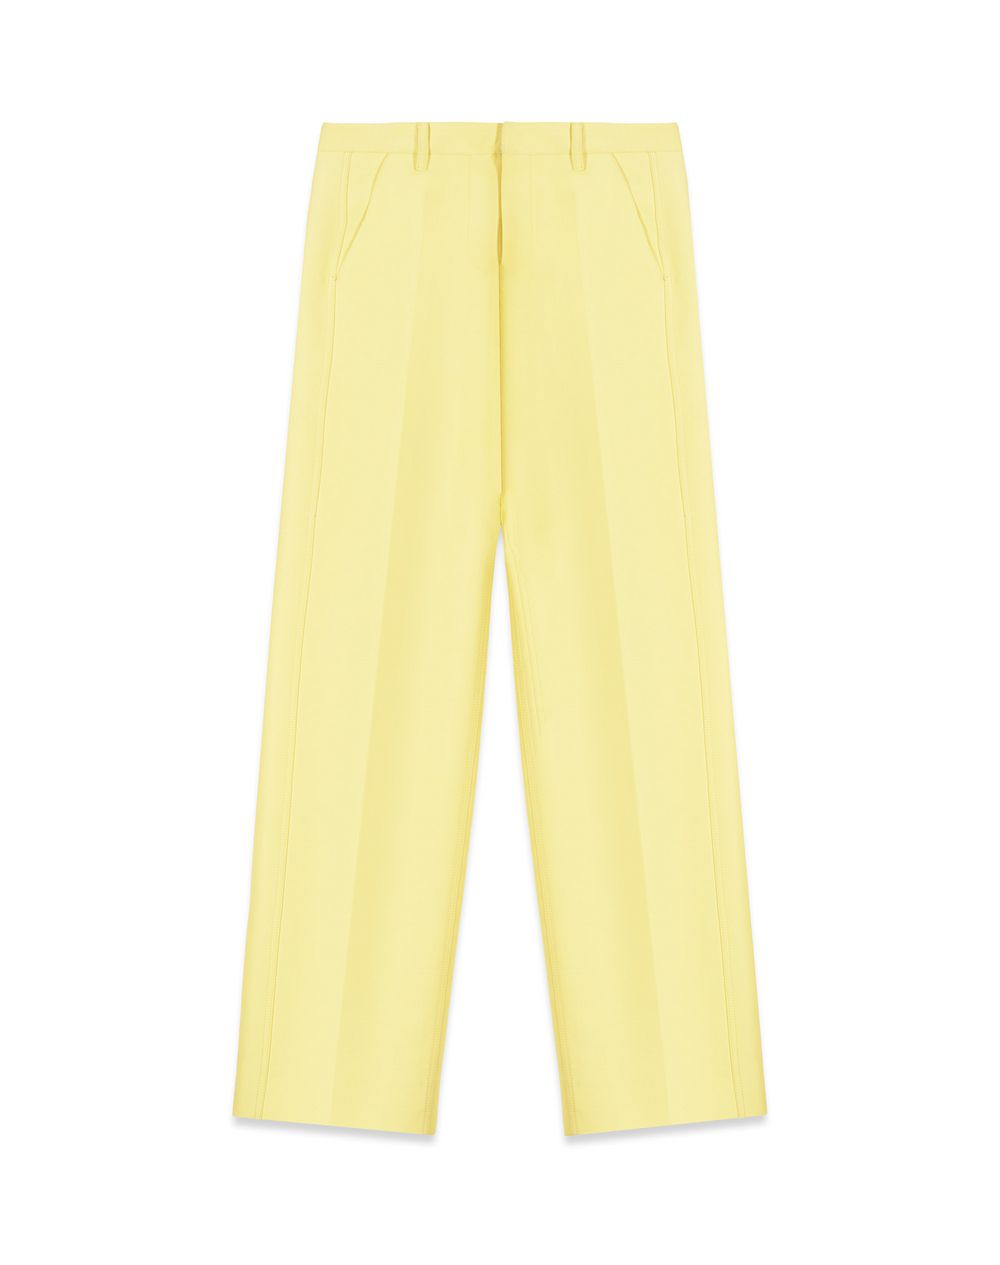 WOOL AND SILK TUXEDO TROUSERS - Lanvin